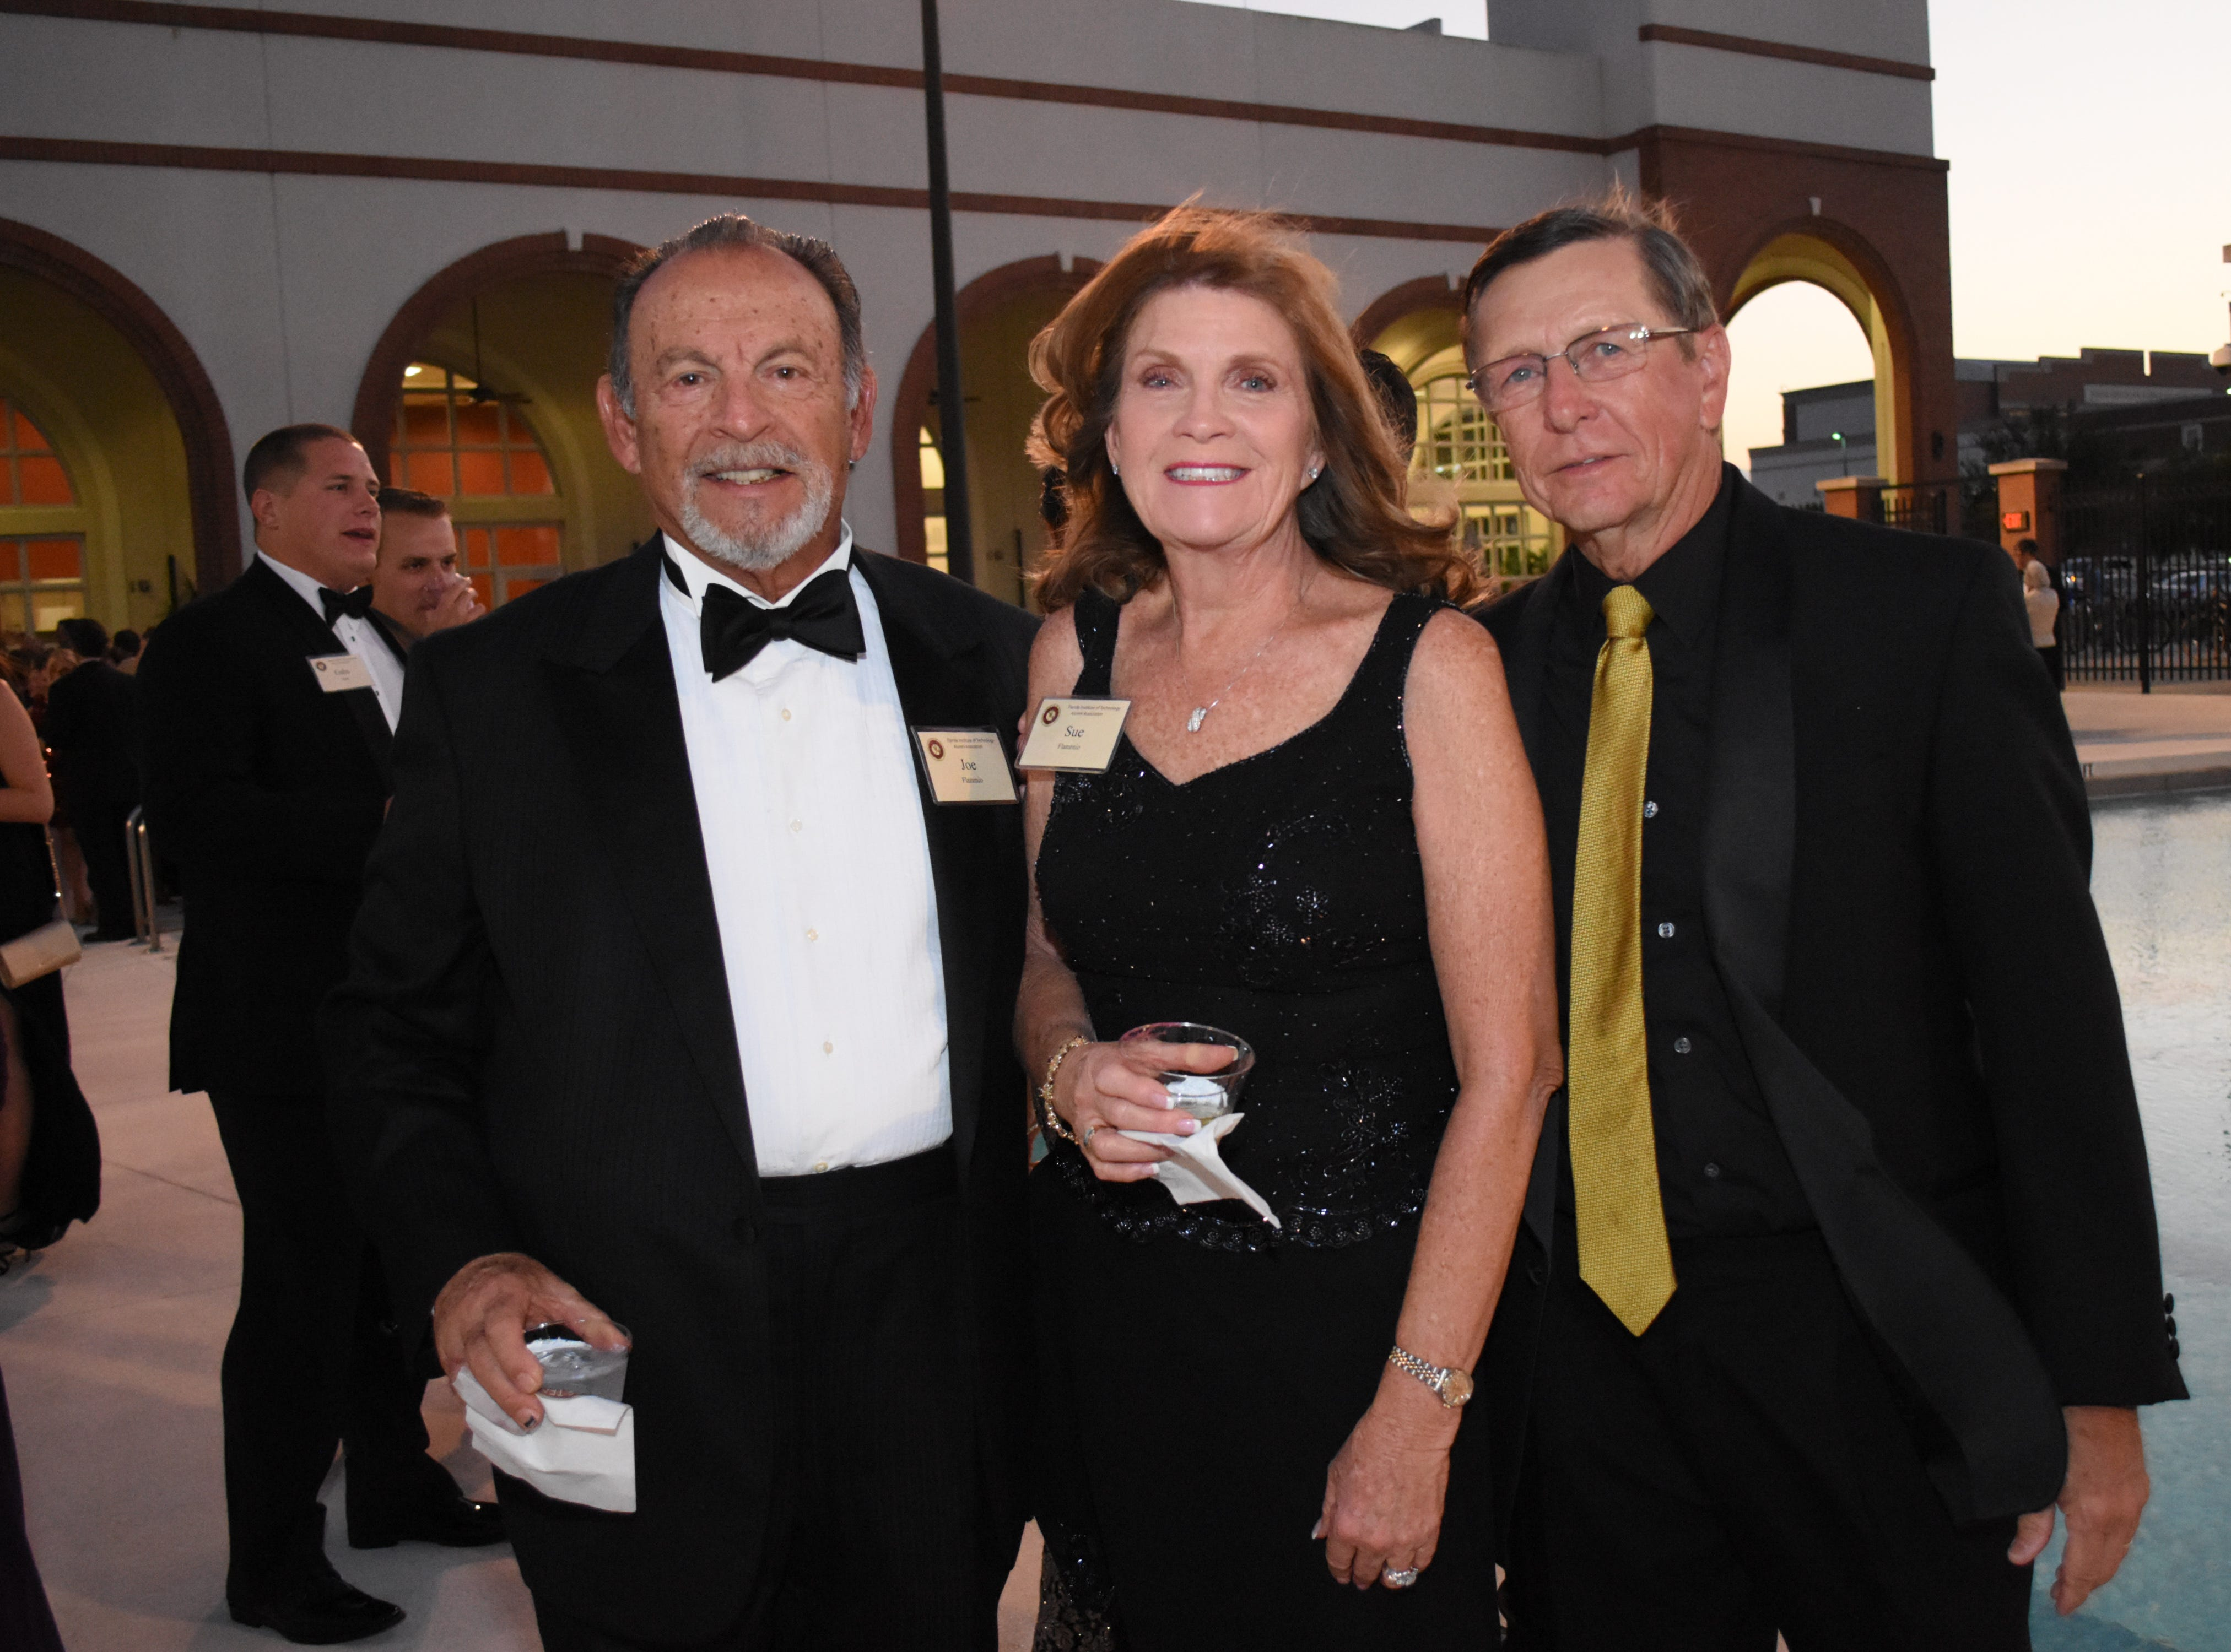 Joe and Sue Flammino poes for a photo with Florida Tech president Dr. T. Dwayne McCay at Florida Tech's 60th Anniversary Homecoming Gala Oct. 13, 2018, at the Clemente Center.